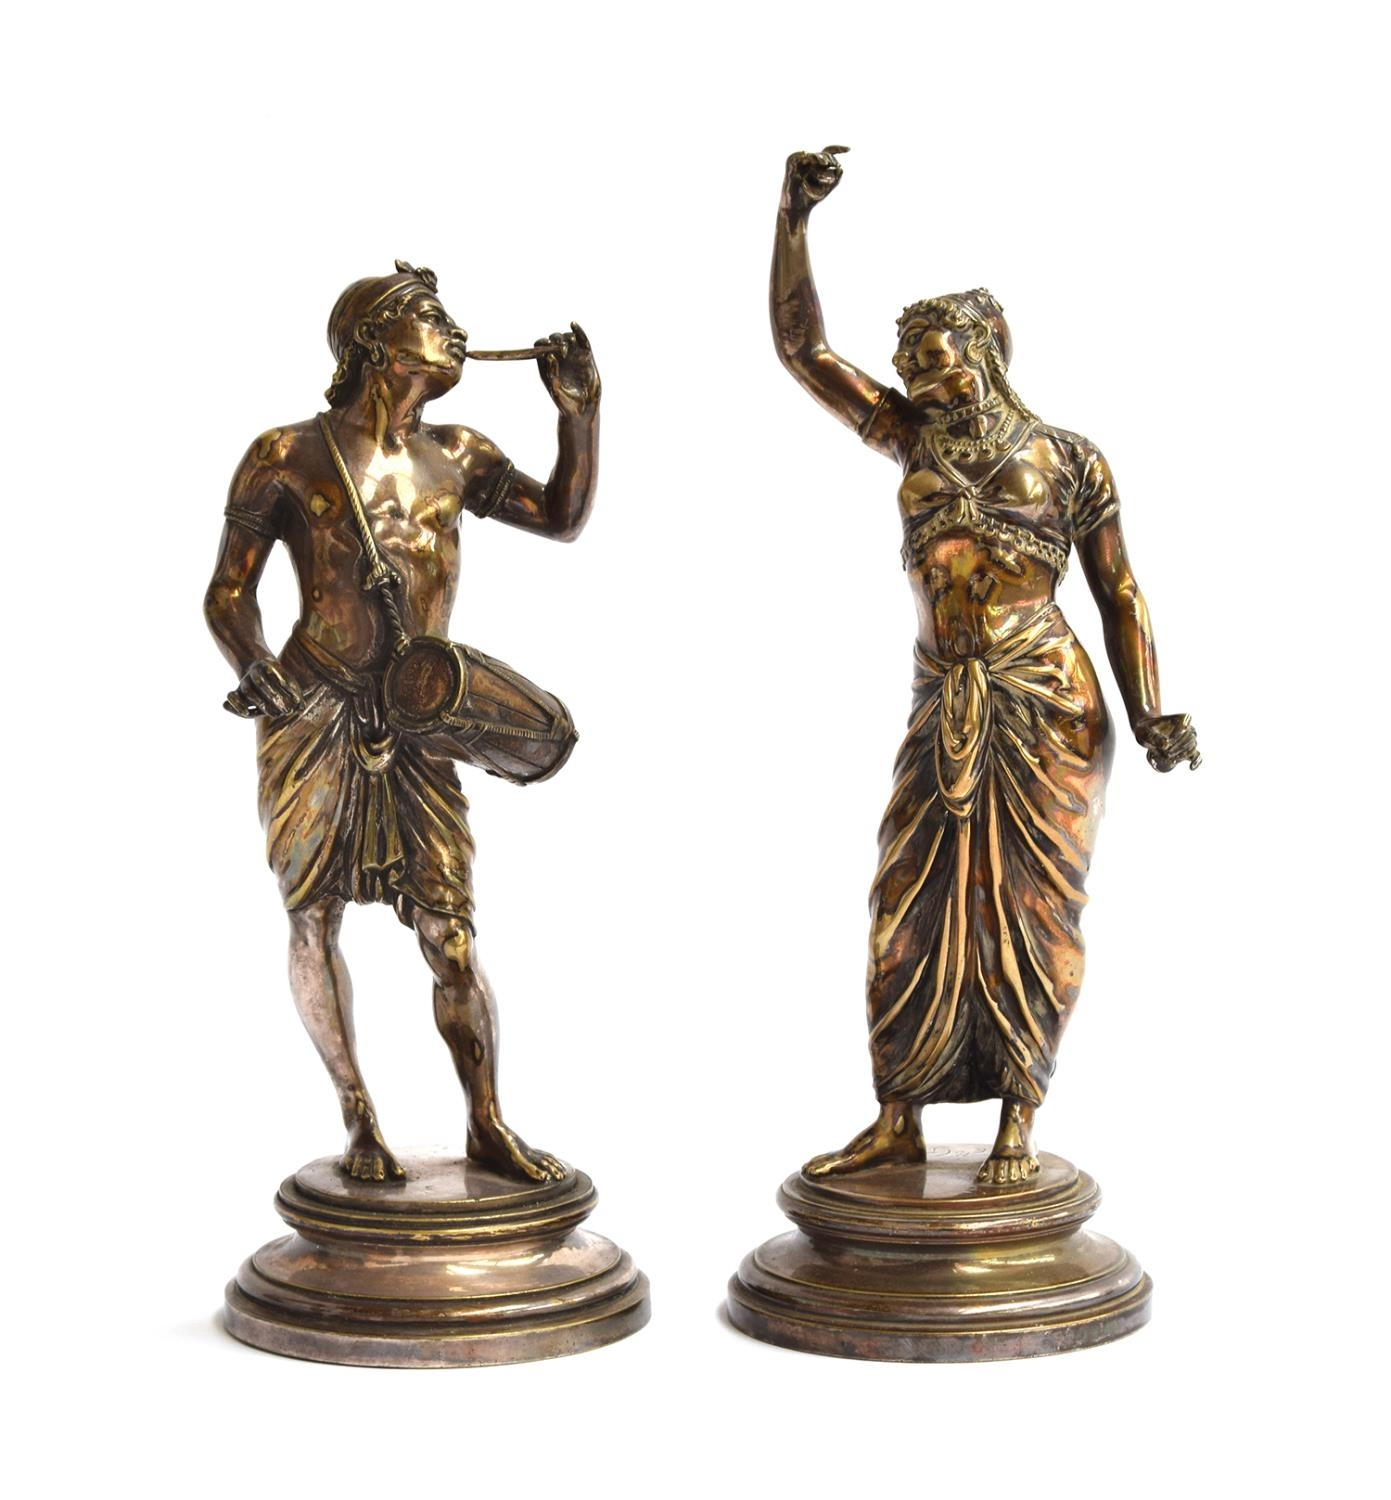 After Emile Guillemin (1841-1907), a pair of silvered bronze figures, 23cm high and 26cm high